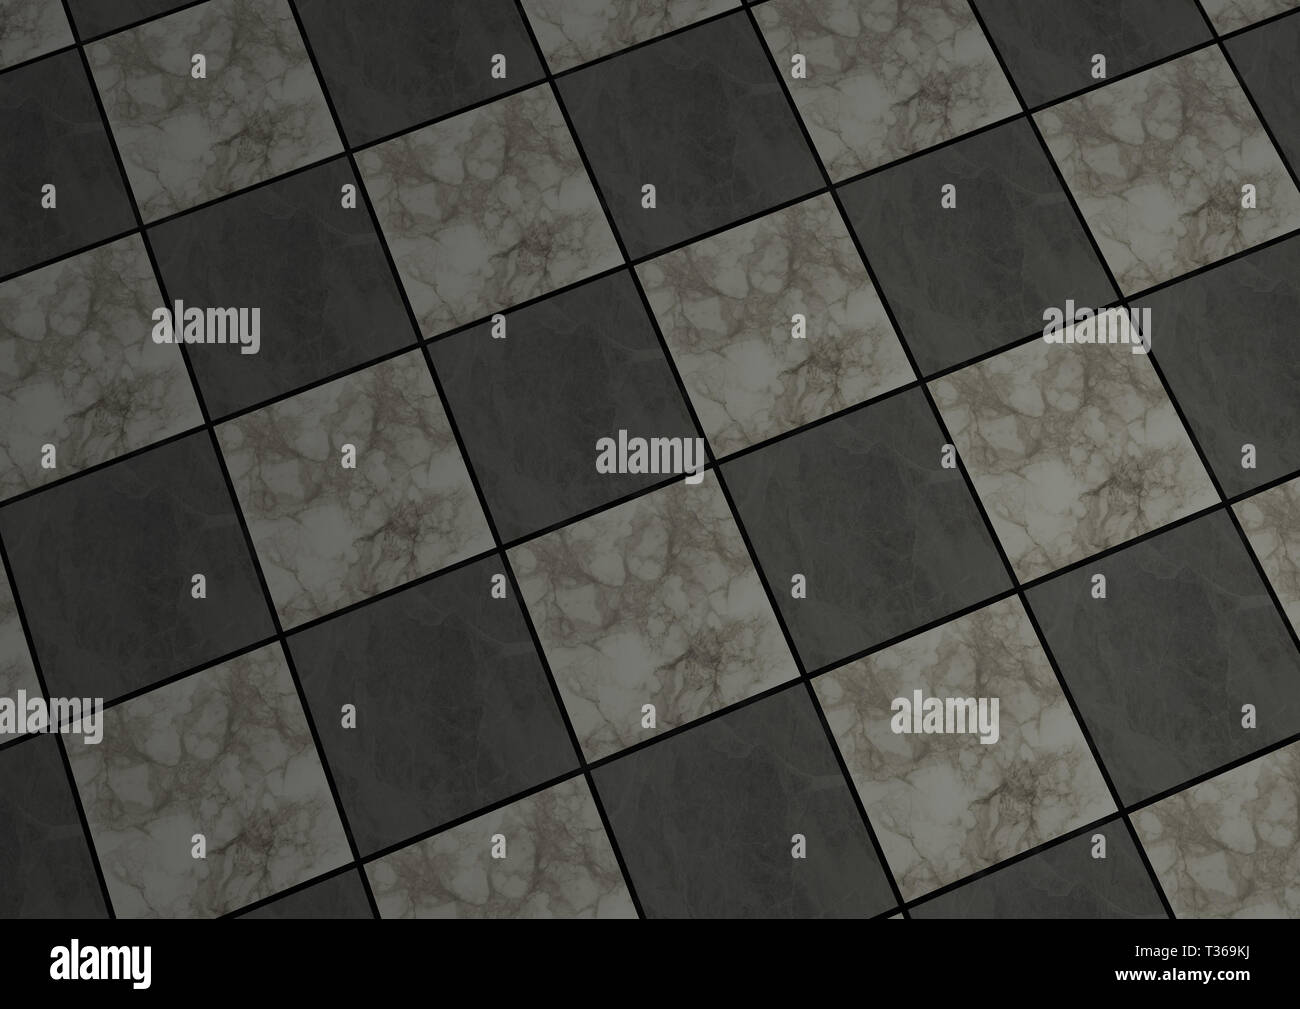 3d Render Of Background Texture Of White And Grey Tiled Marble Floors In A Diagonal Checkered Pattern Stock Photo Alamy